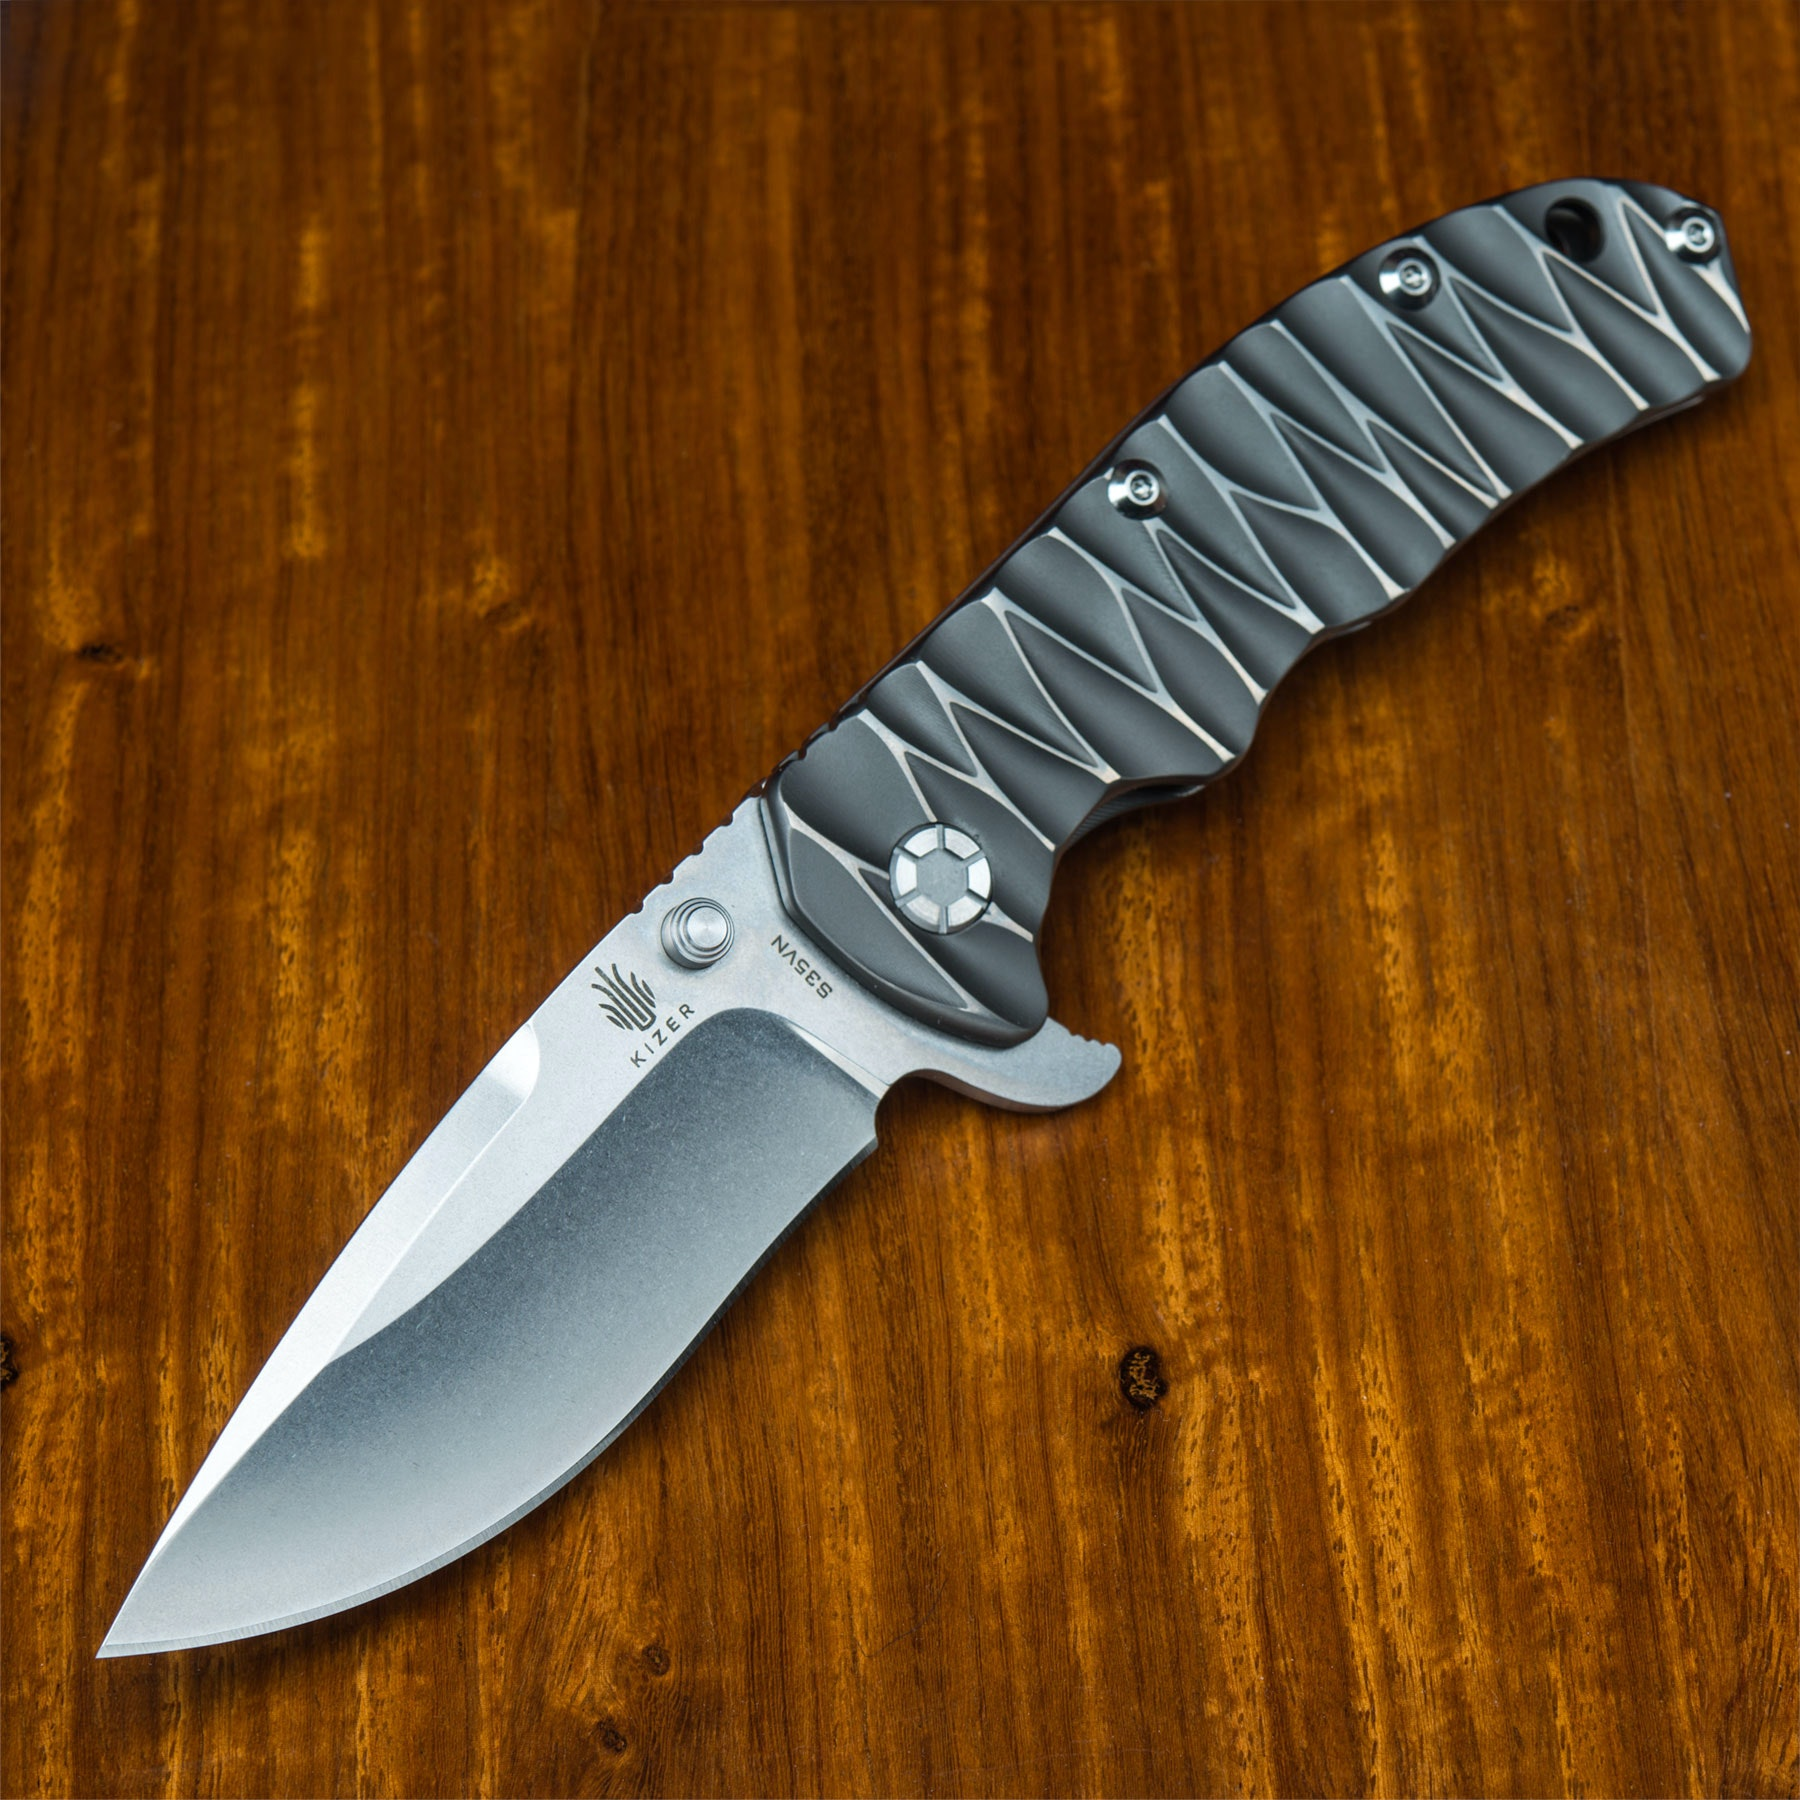 Kizer Ki401B1 Textured Titanium Folding Knife